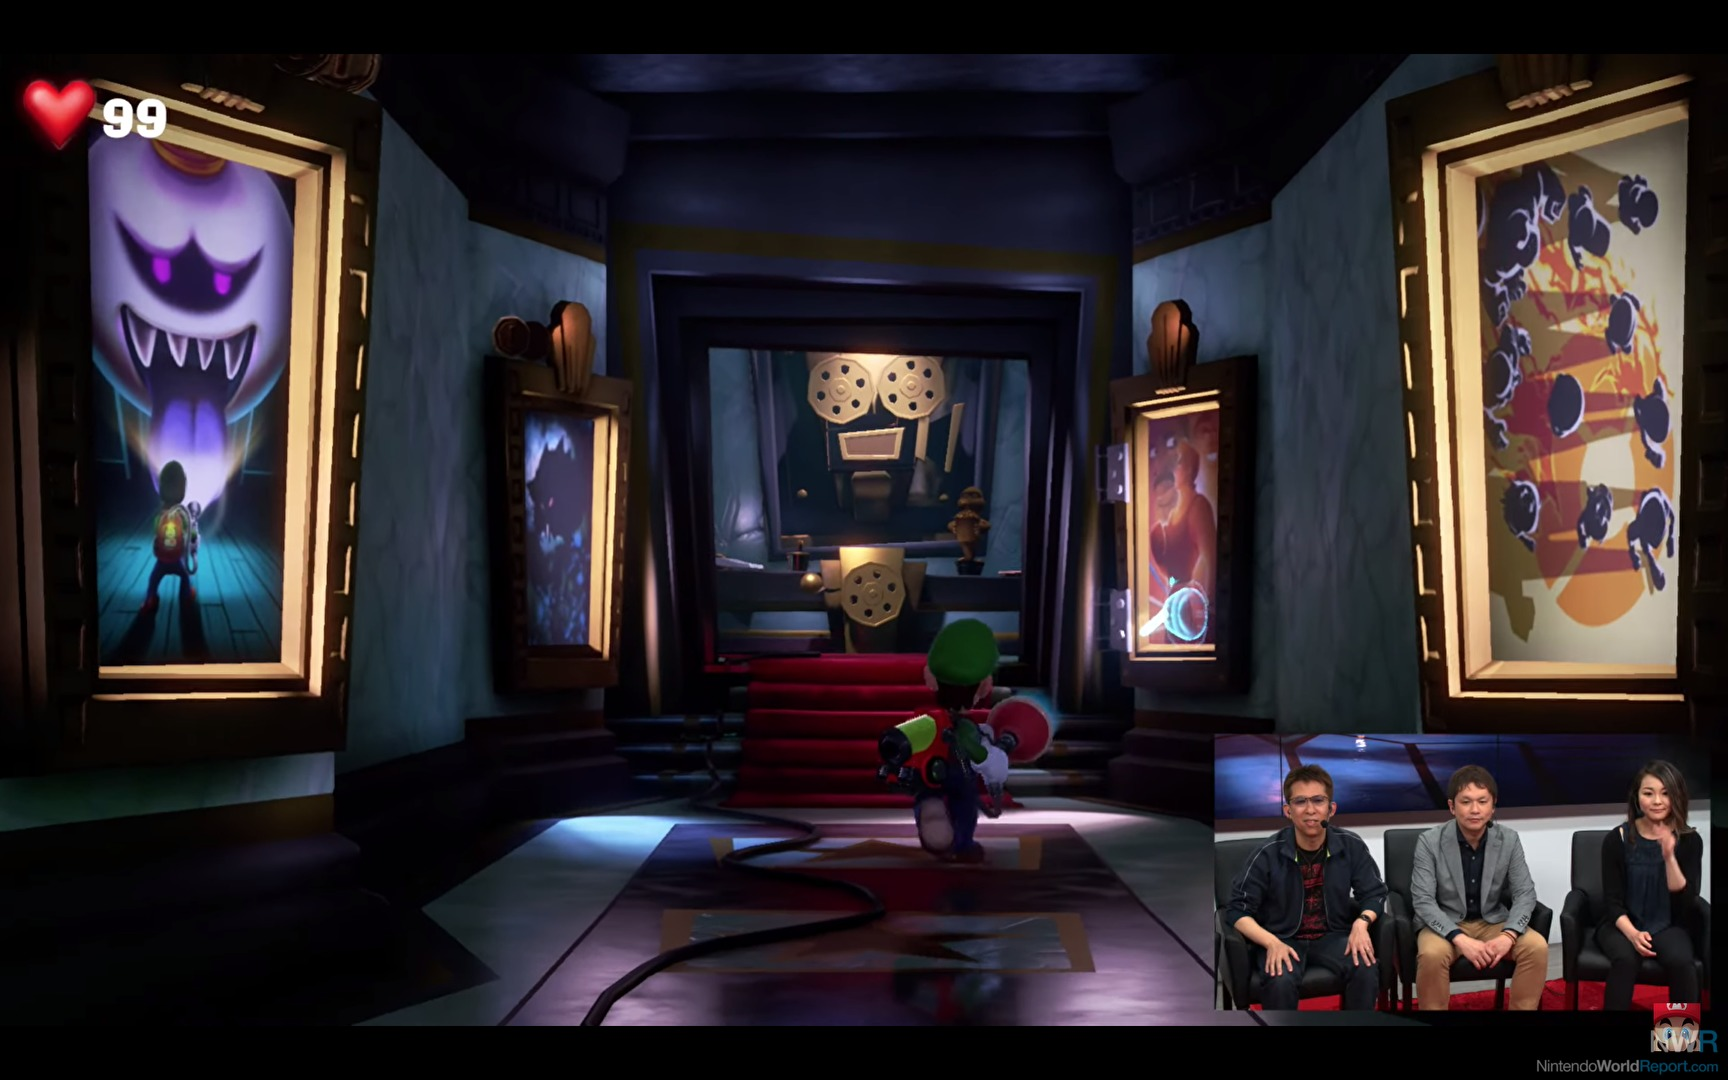 Luigi S Mansion 3 S Movie Theater Level Includes Multiple Next Level Games Easter Eggs Gonintendo